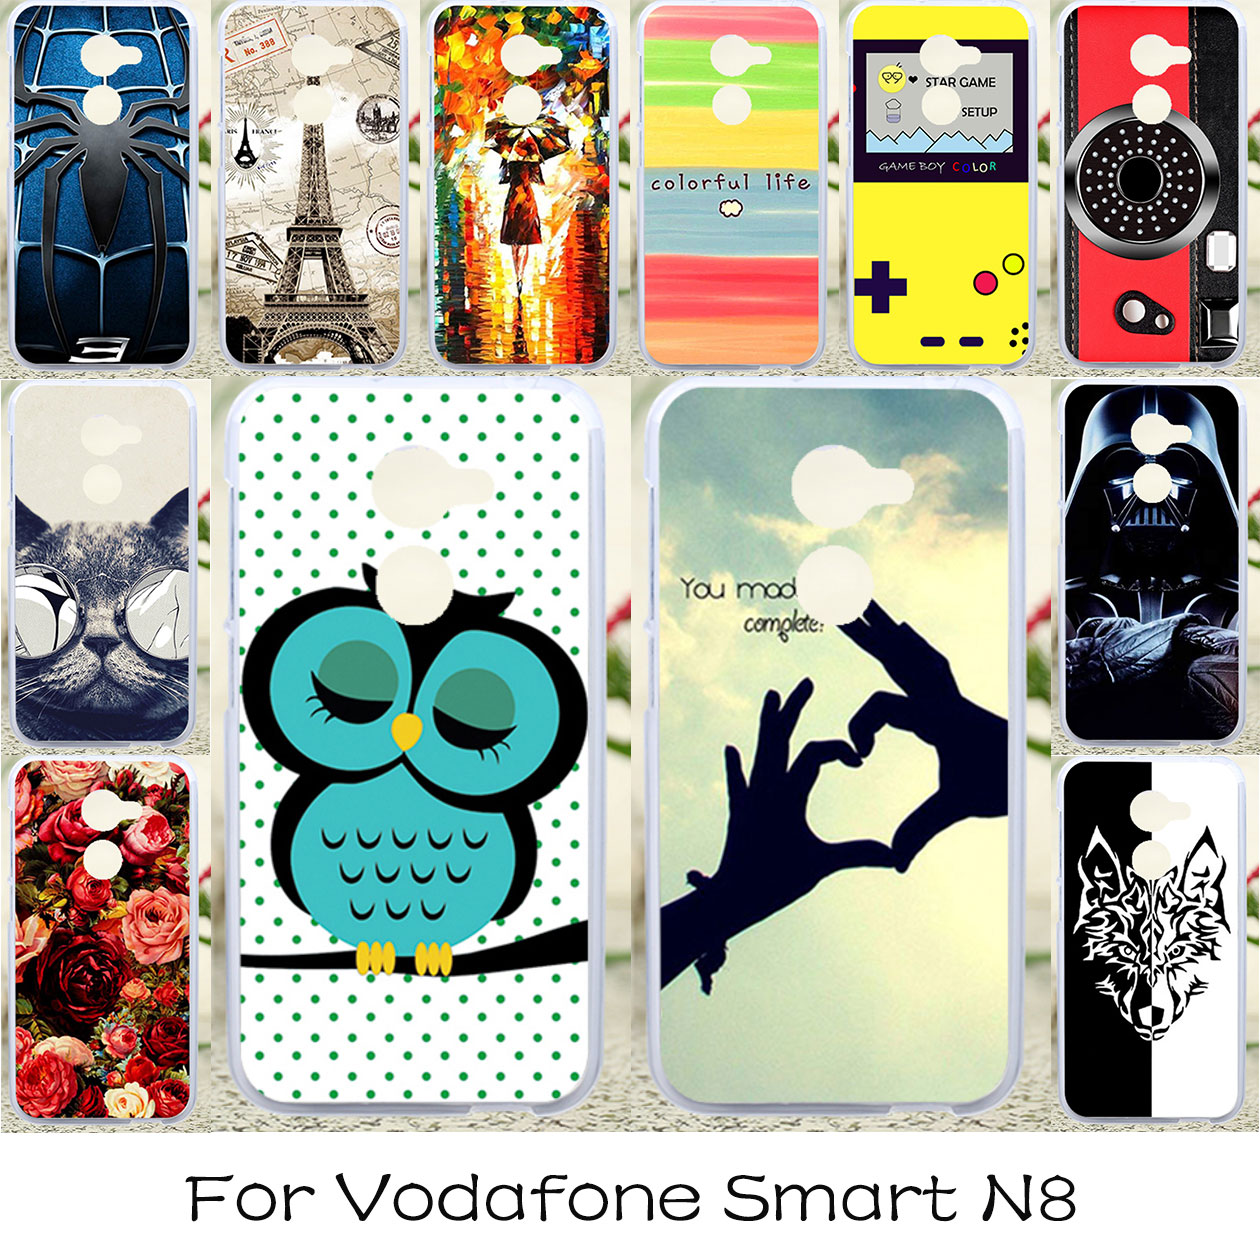 TAOYUNXI DIY Silicone Phone Covers Cases For Vodafone Smart N8 VFD610 5 0  inch Flexible Housing Bag Anti-knock Cover Case Skin